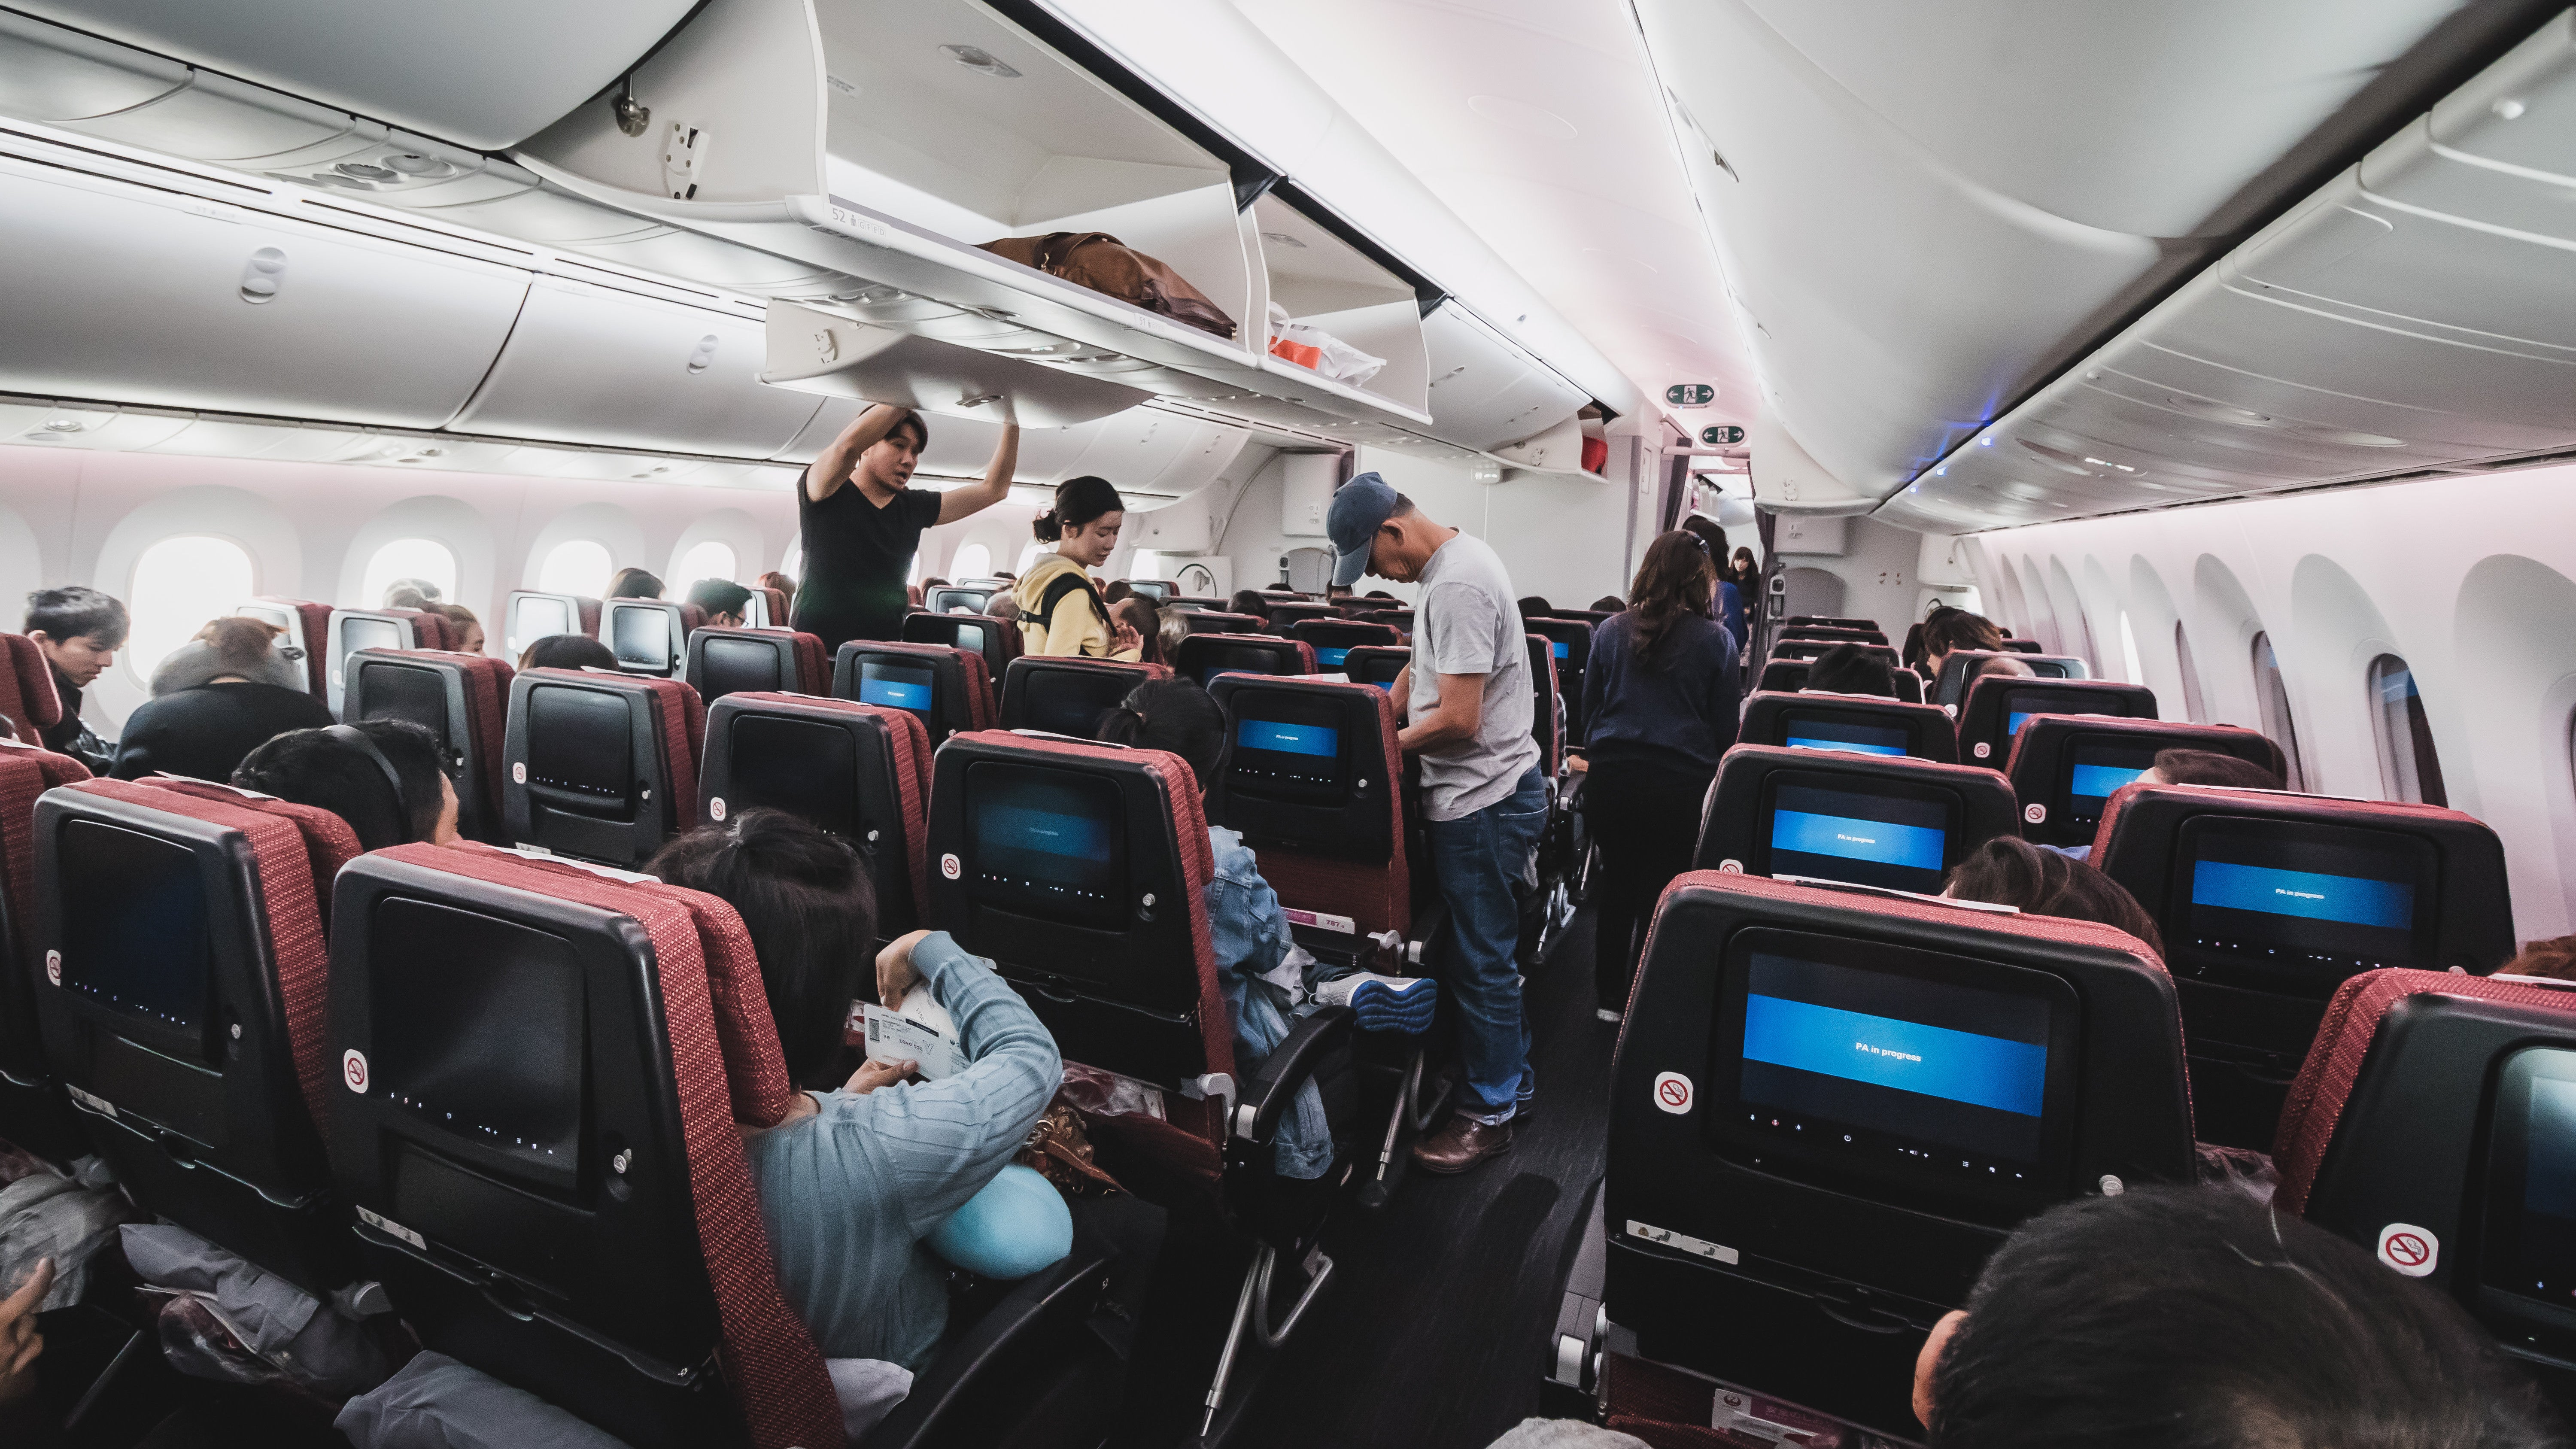 How To Survive The Middle Seat On Flights